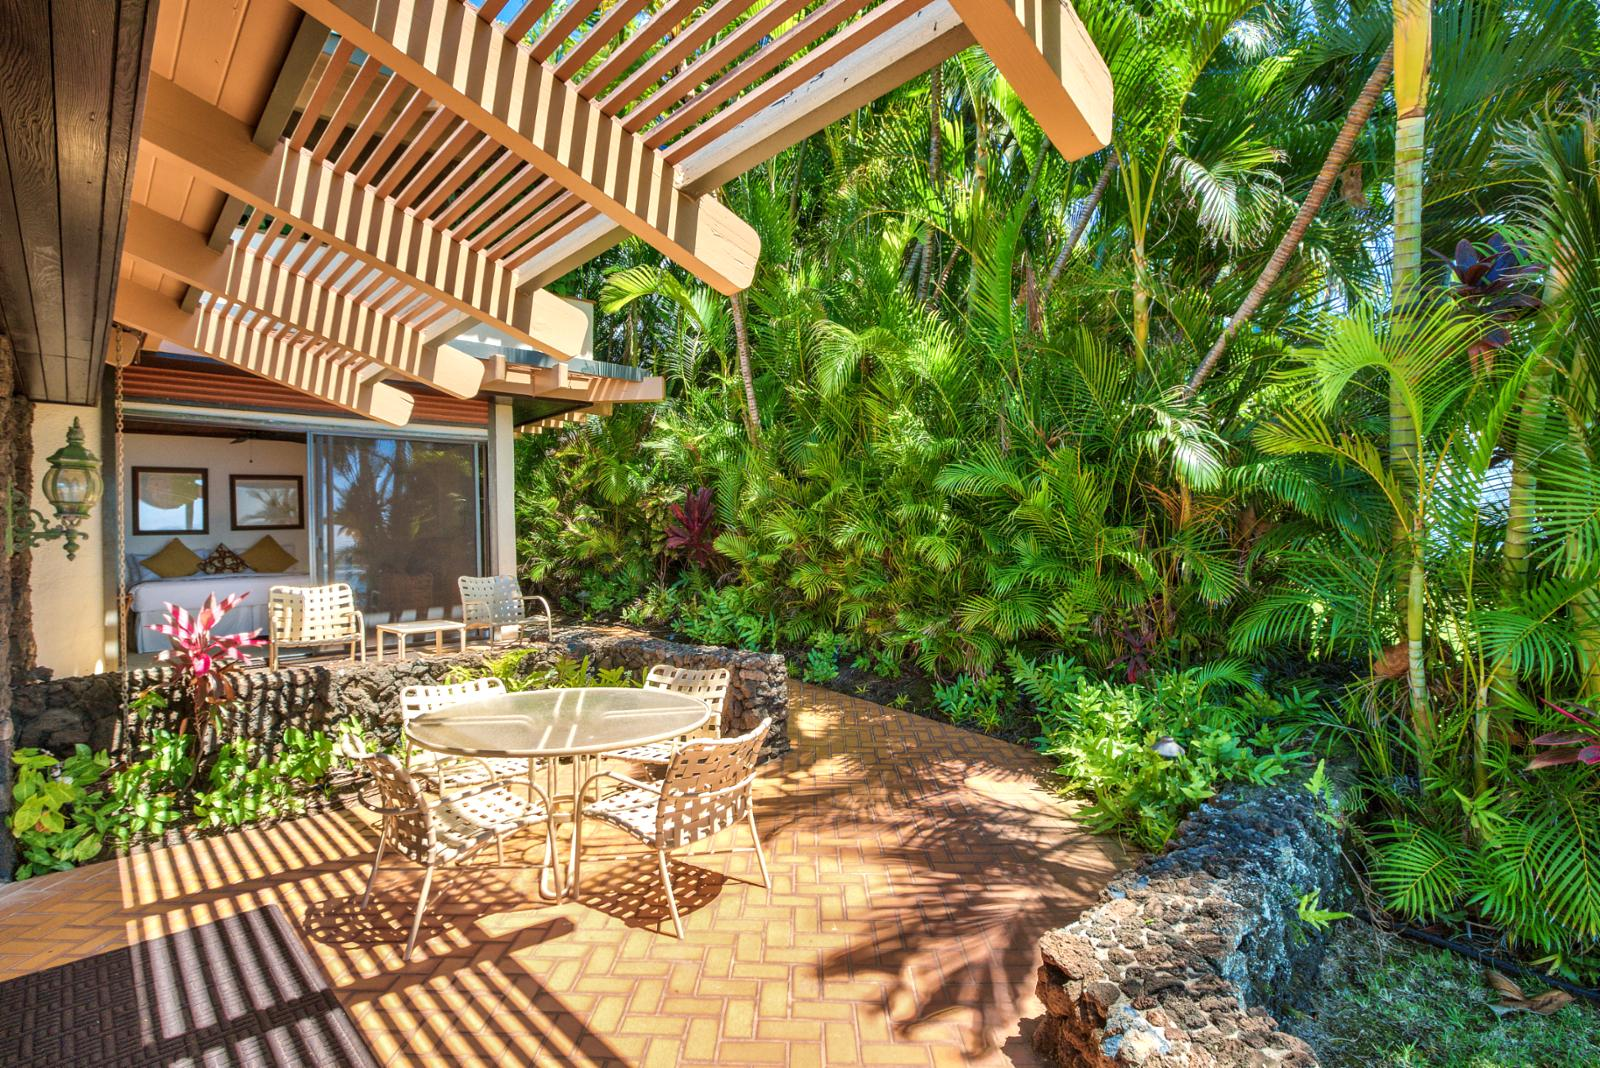 Massive outdoor lanai for perfect relaxation and cool ocean breezes